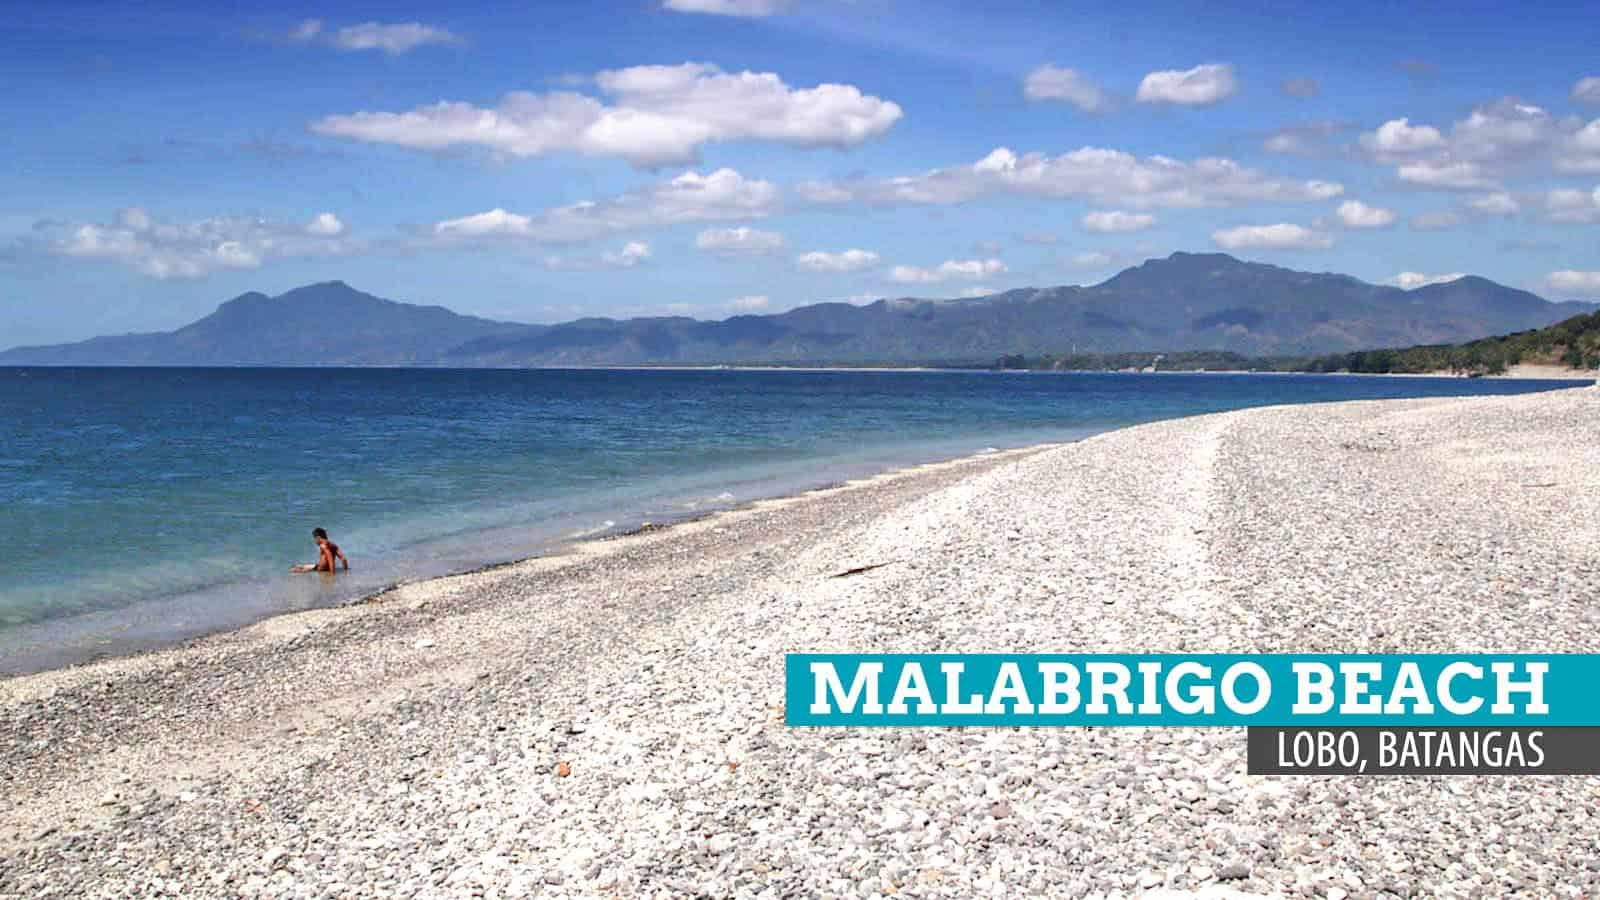 Malabrigo Beach Stoned Solitude In Lobo Batangas